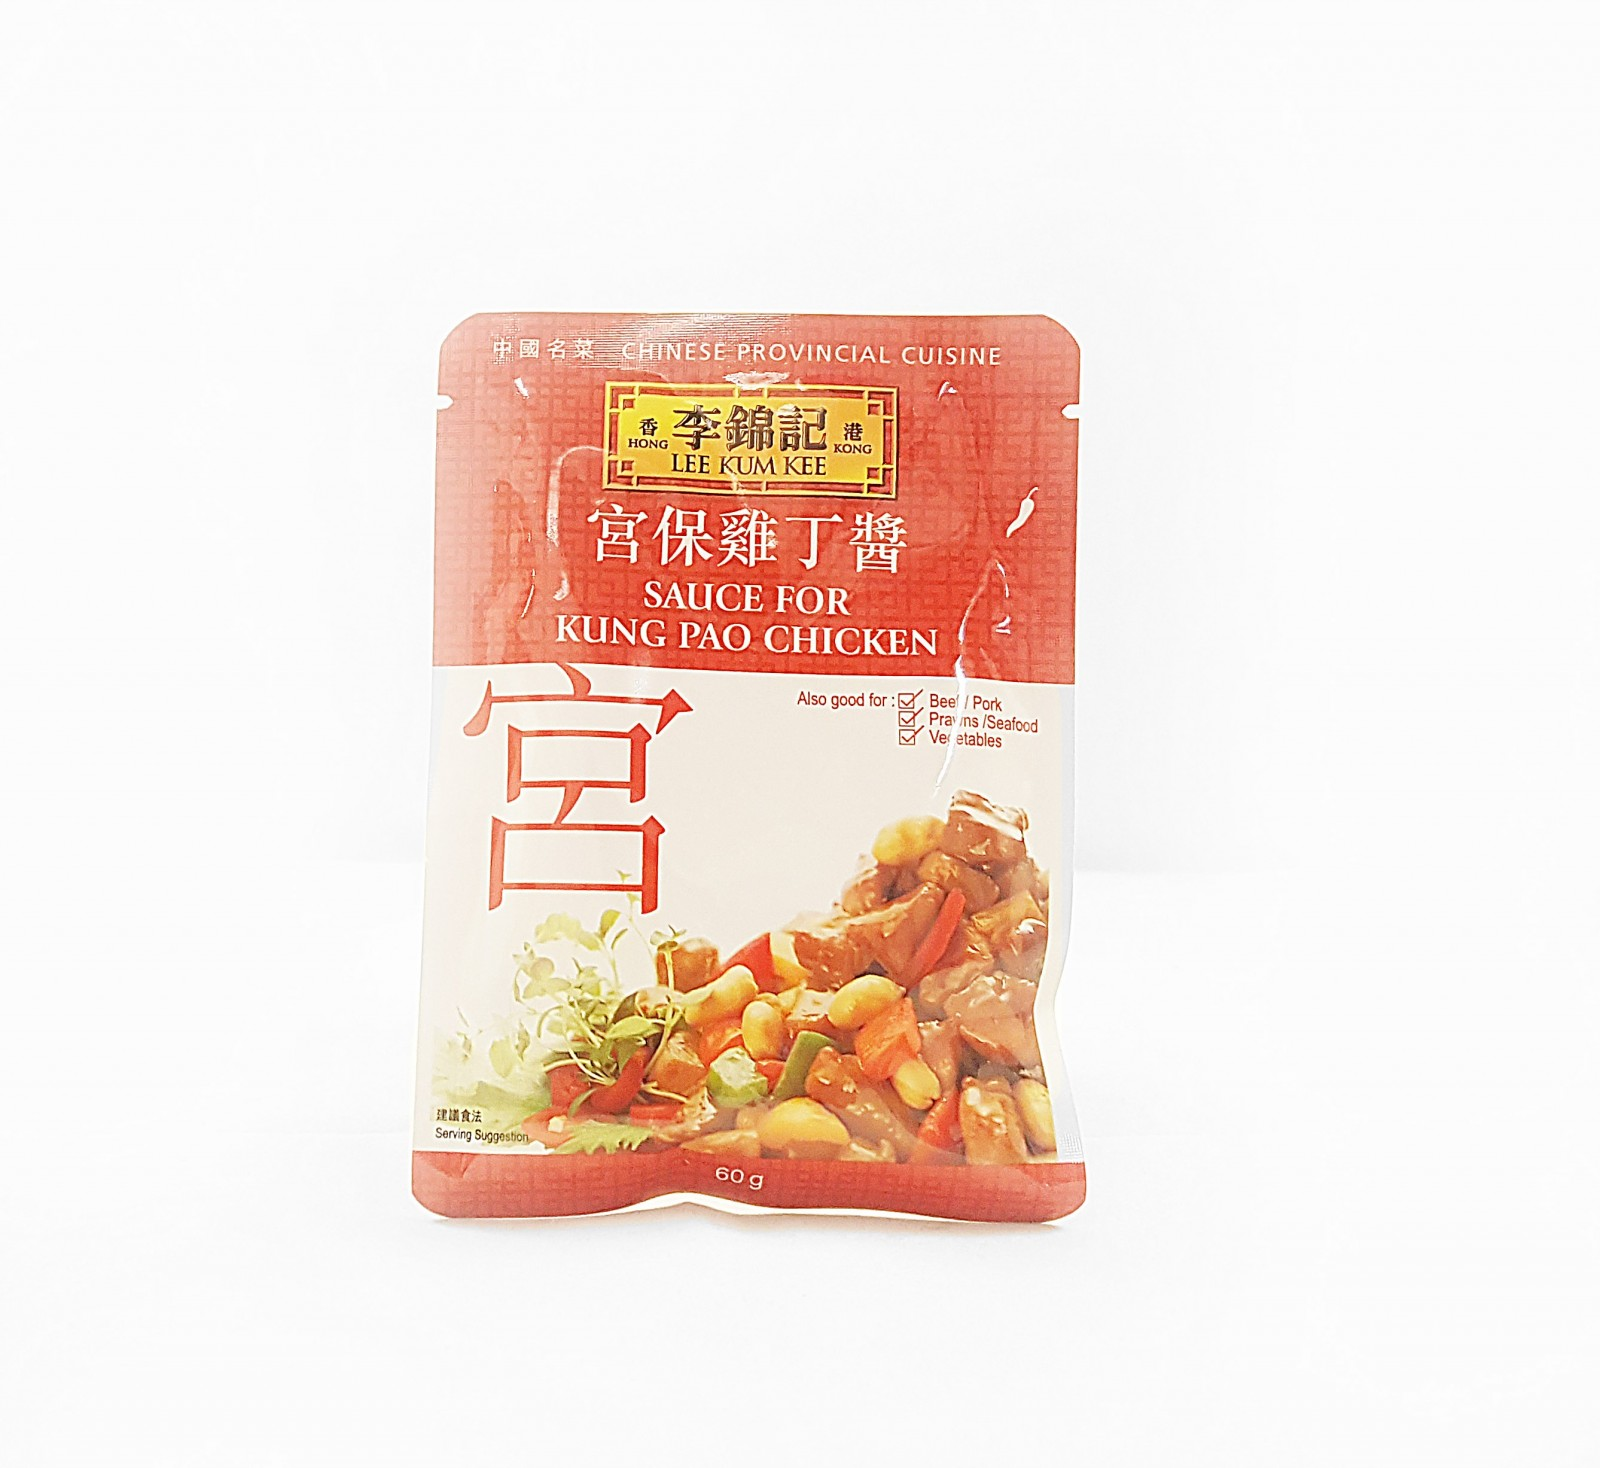 Lee Kum Kee Sauce For Kung Pao Chicken 60g - Cooking Sauces & Paste...